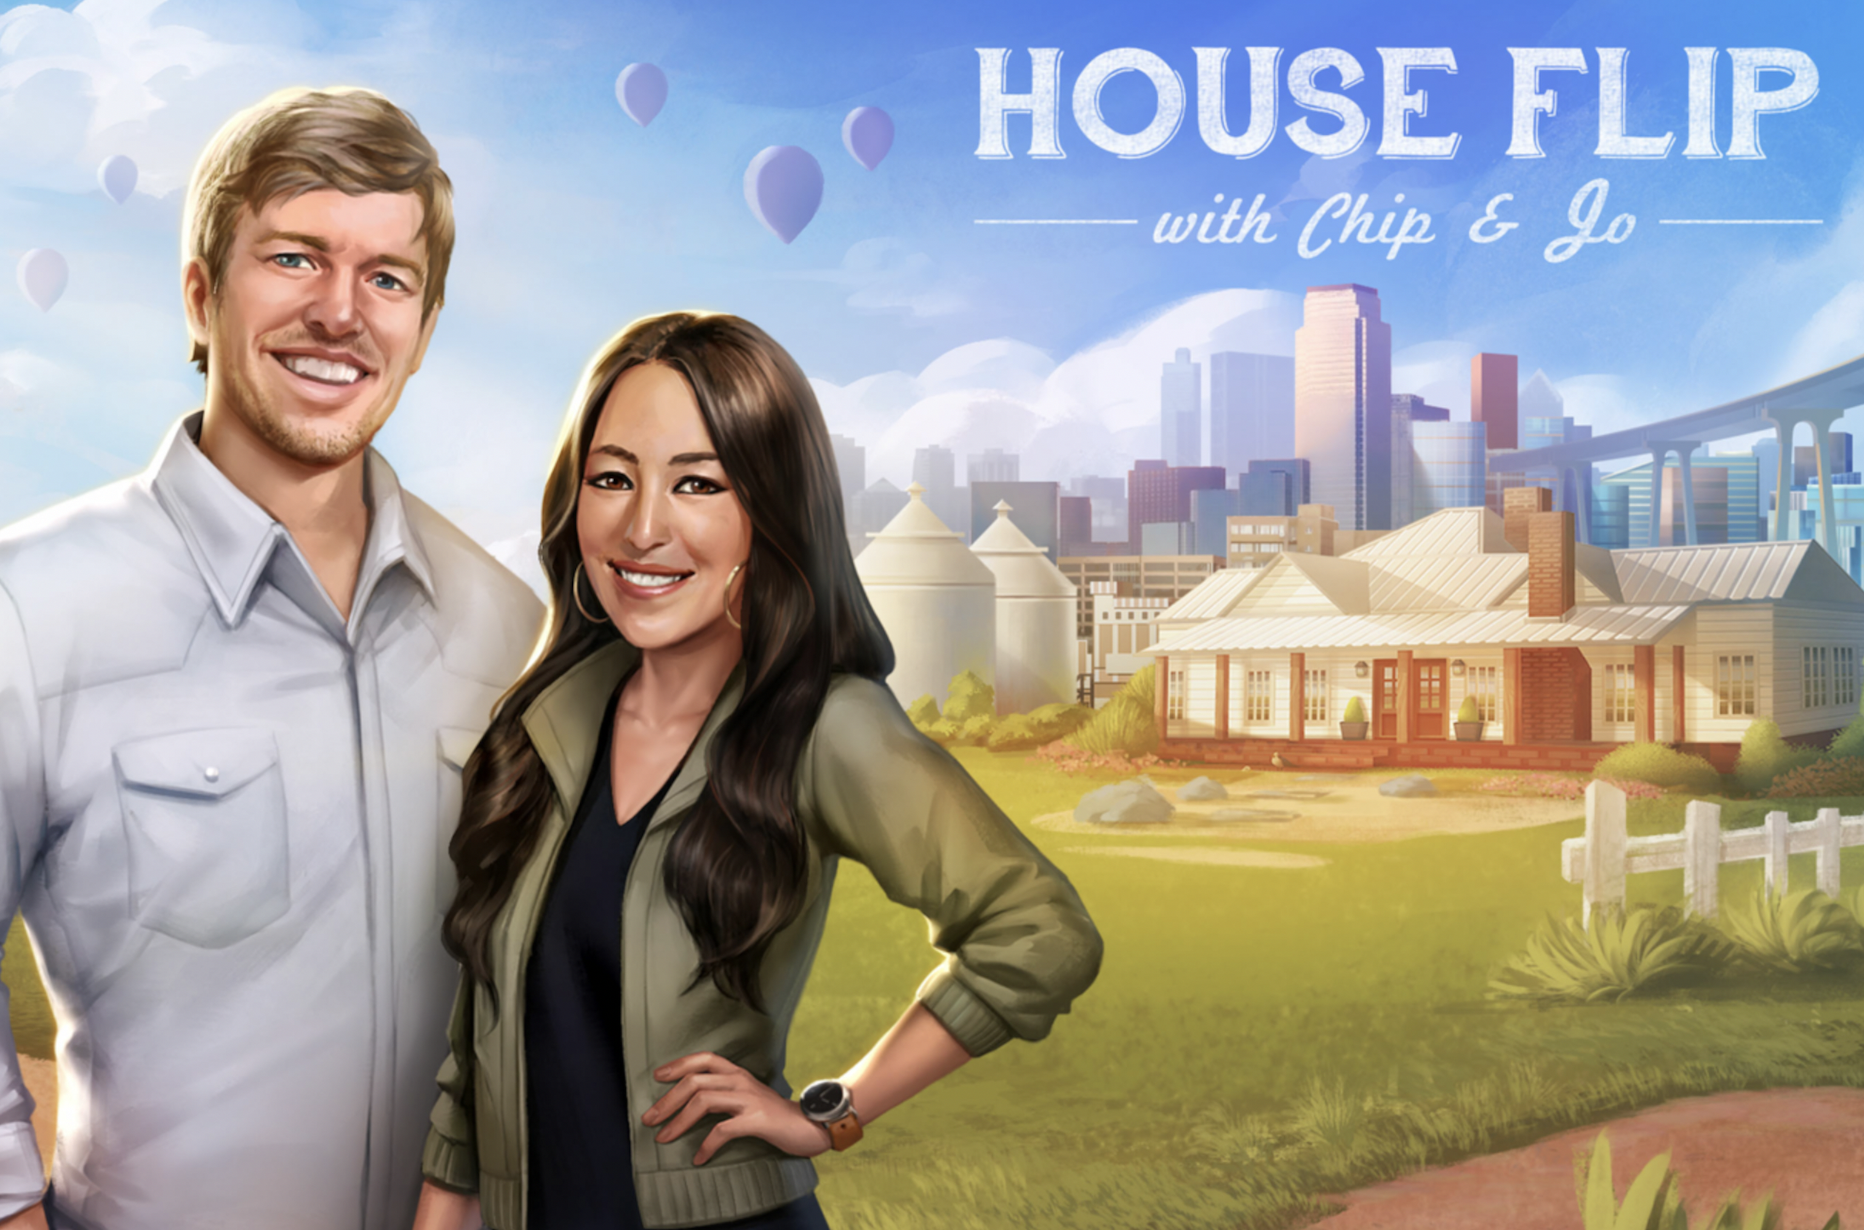 chip joanna gaines have their own house flipping game but unfortunately it 39 s a flop player one. Black Bedroom Furniture Sets. Home Design Ideas